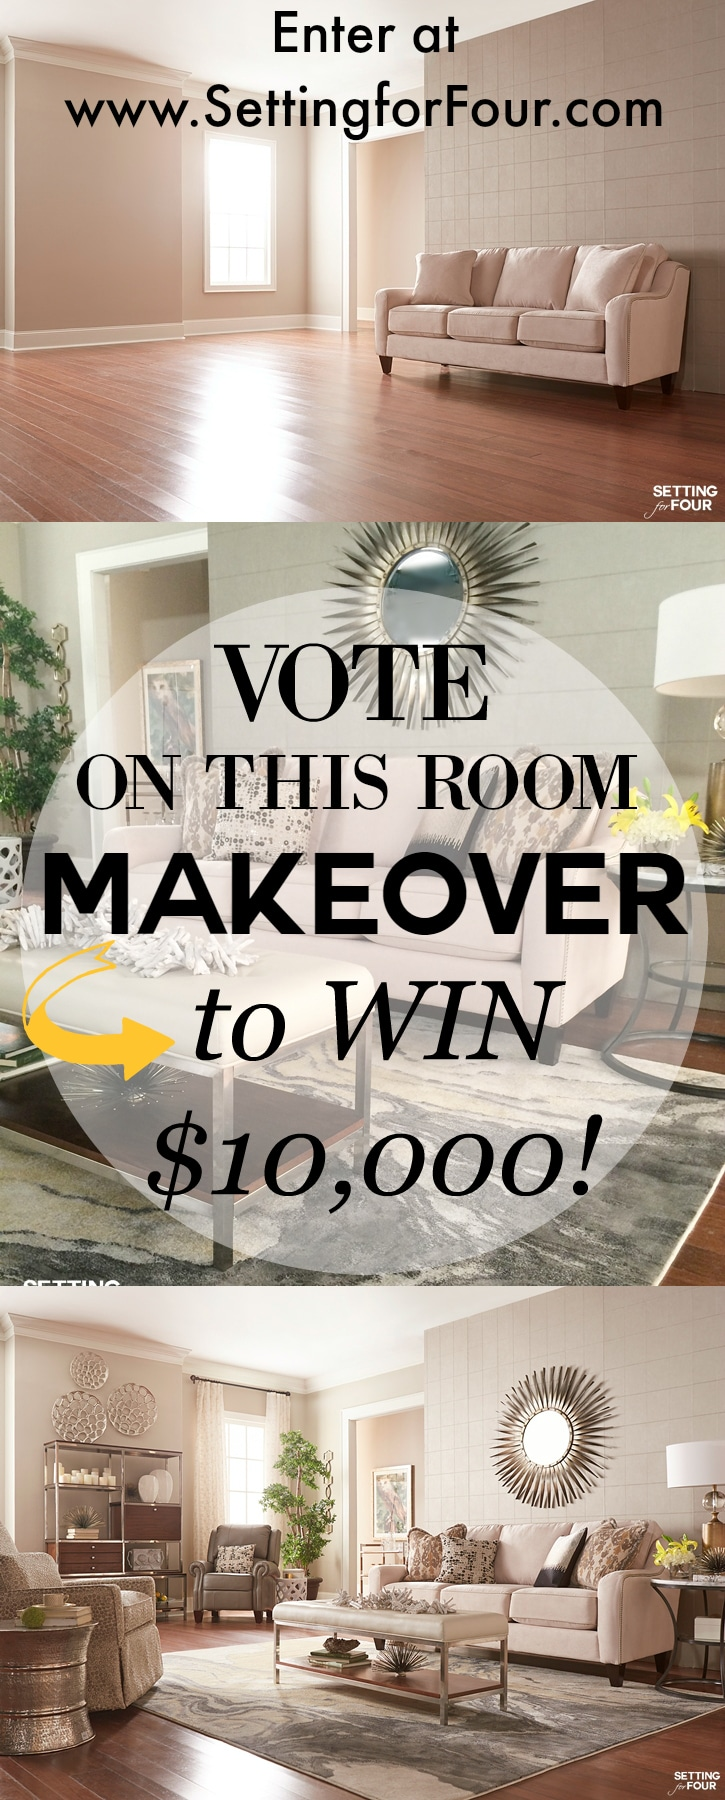 Ready to make your home beautiful? Vote on this room makeover to WIN $10,000 La-Z-Boy furniture! www.settingforfour.com